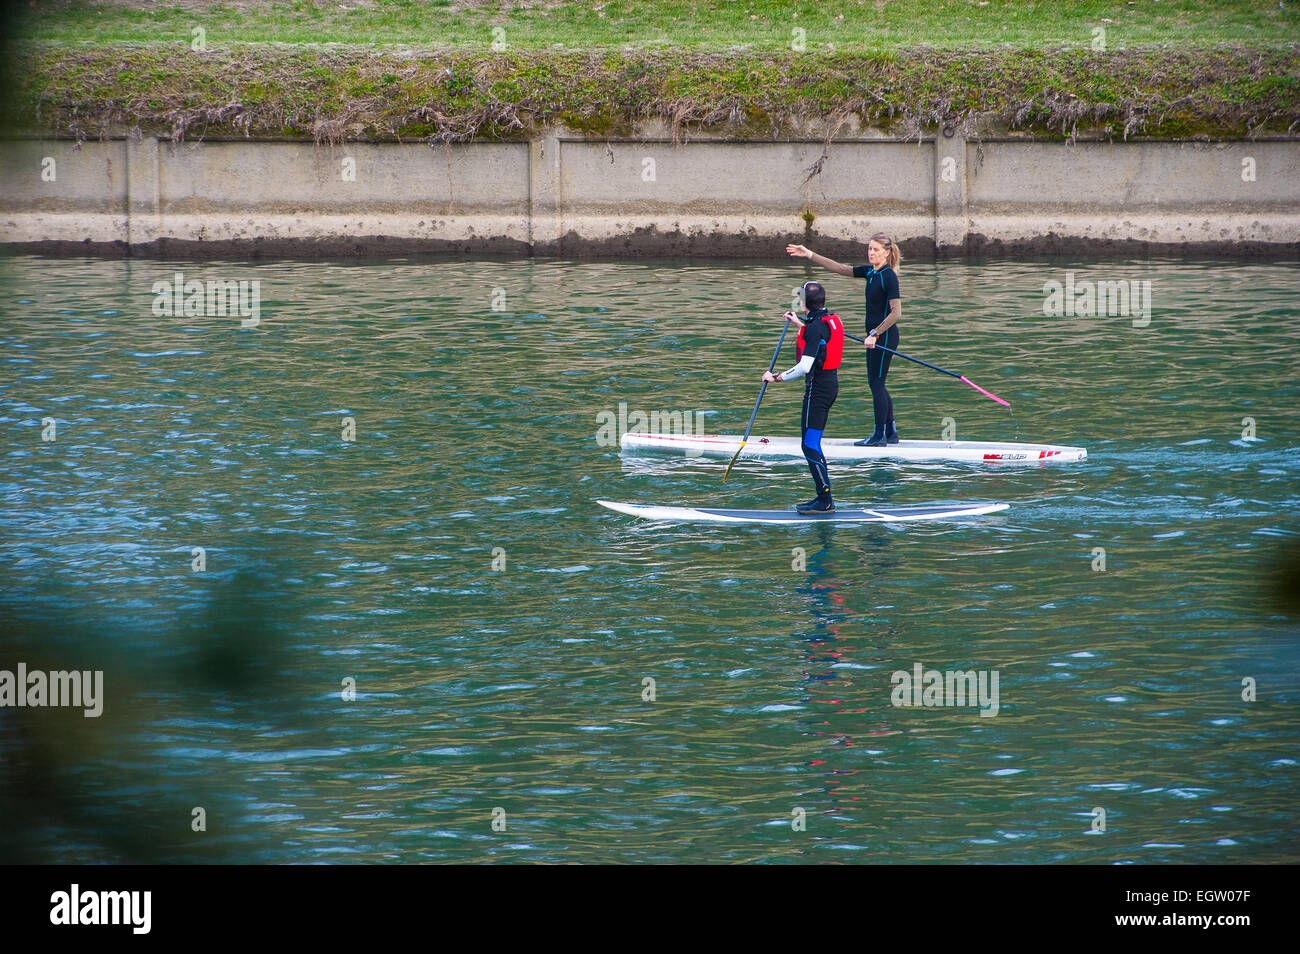 Italy Piedmont Turin Valentino park The Po River Sport - Stock Image